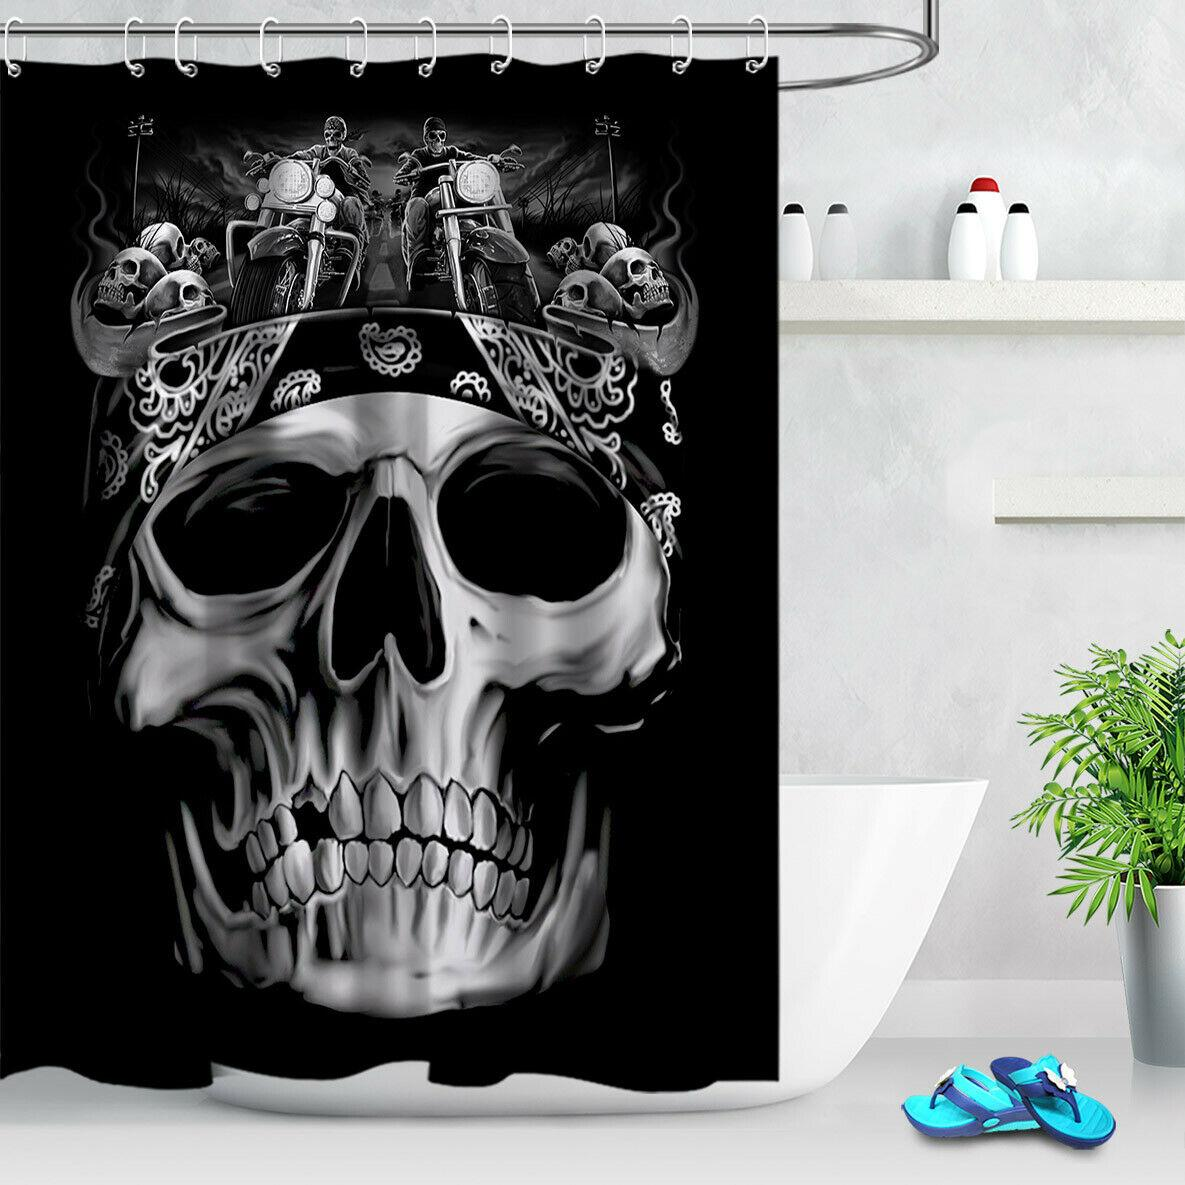 Halloween Skull Motorcycle Rider Bathroom Shower Curtain Durable Fabric Mold Proof Bathroom Pendant Creative with 12 Hooks 180X180CM